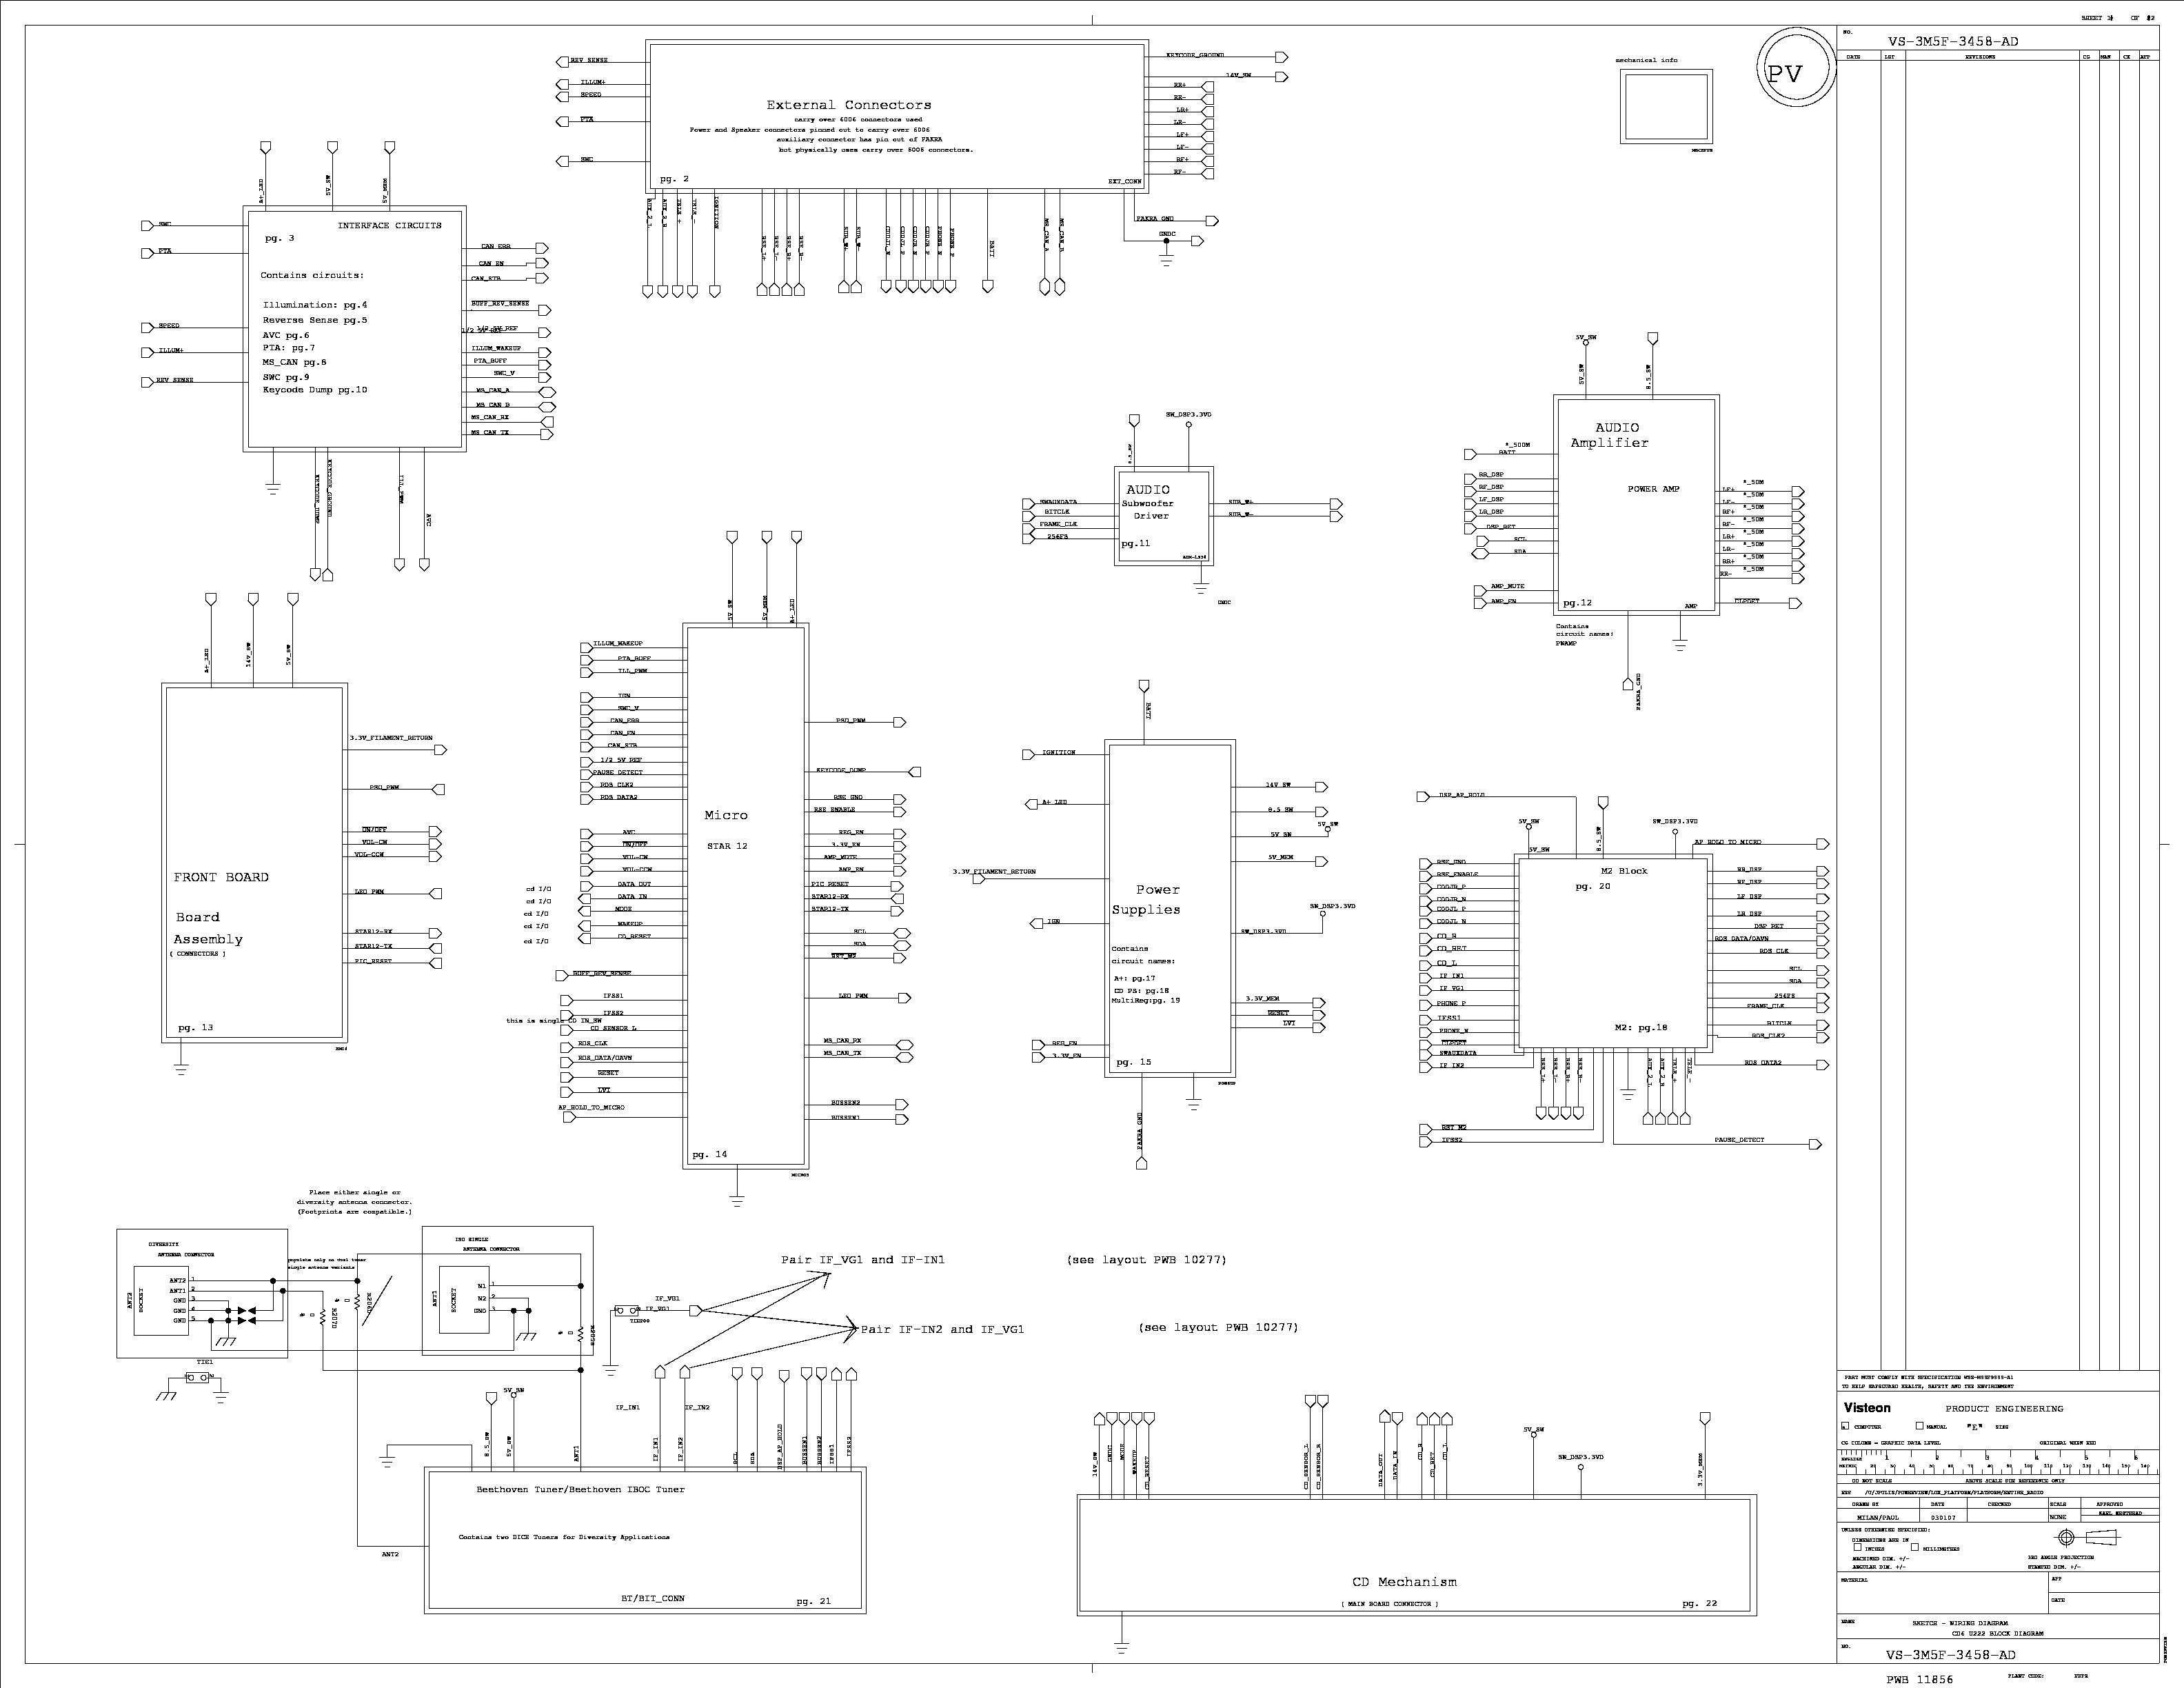 Sony Cdx 1150 Wiring Diagram Well Detailed Diagrams Car Audio Service Manuals And Schematics Repair Information Rh Servlib Com Xplod Deck Harness Colors